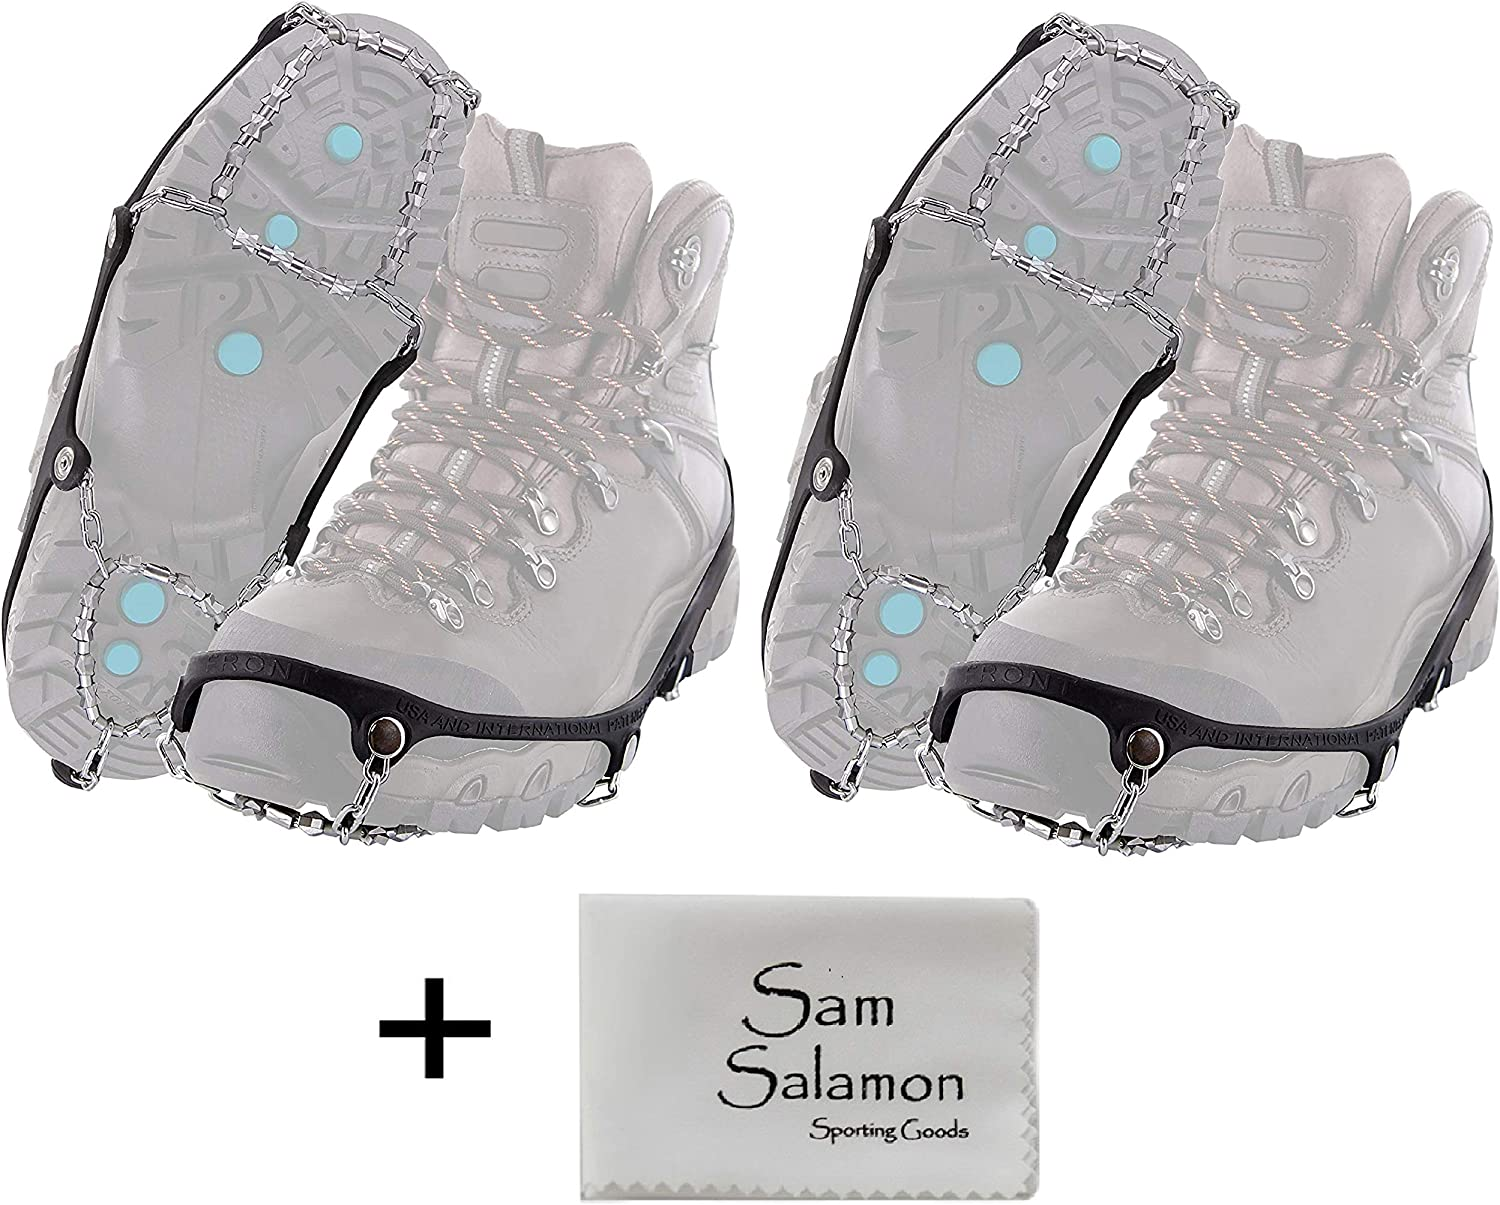 Yaktrax Diamond Grip All-Surface Traction Cleats for Walking on Ice and Snow (2 Pair) w/Micro Sam Salamon Cloth